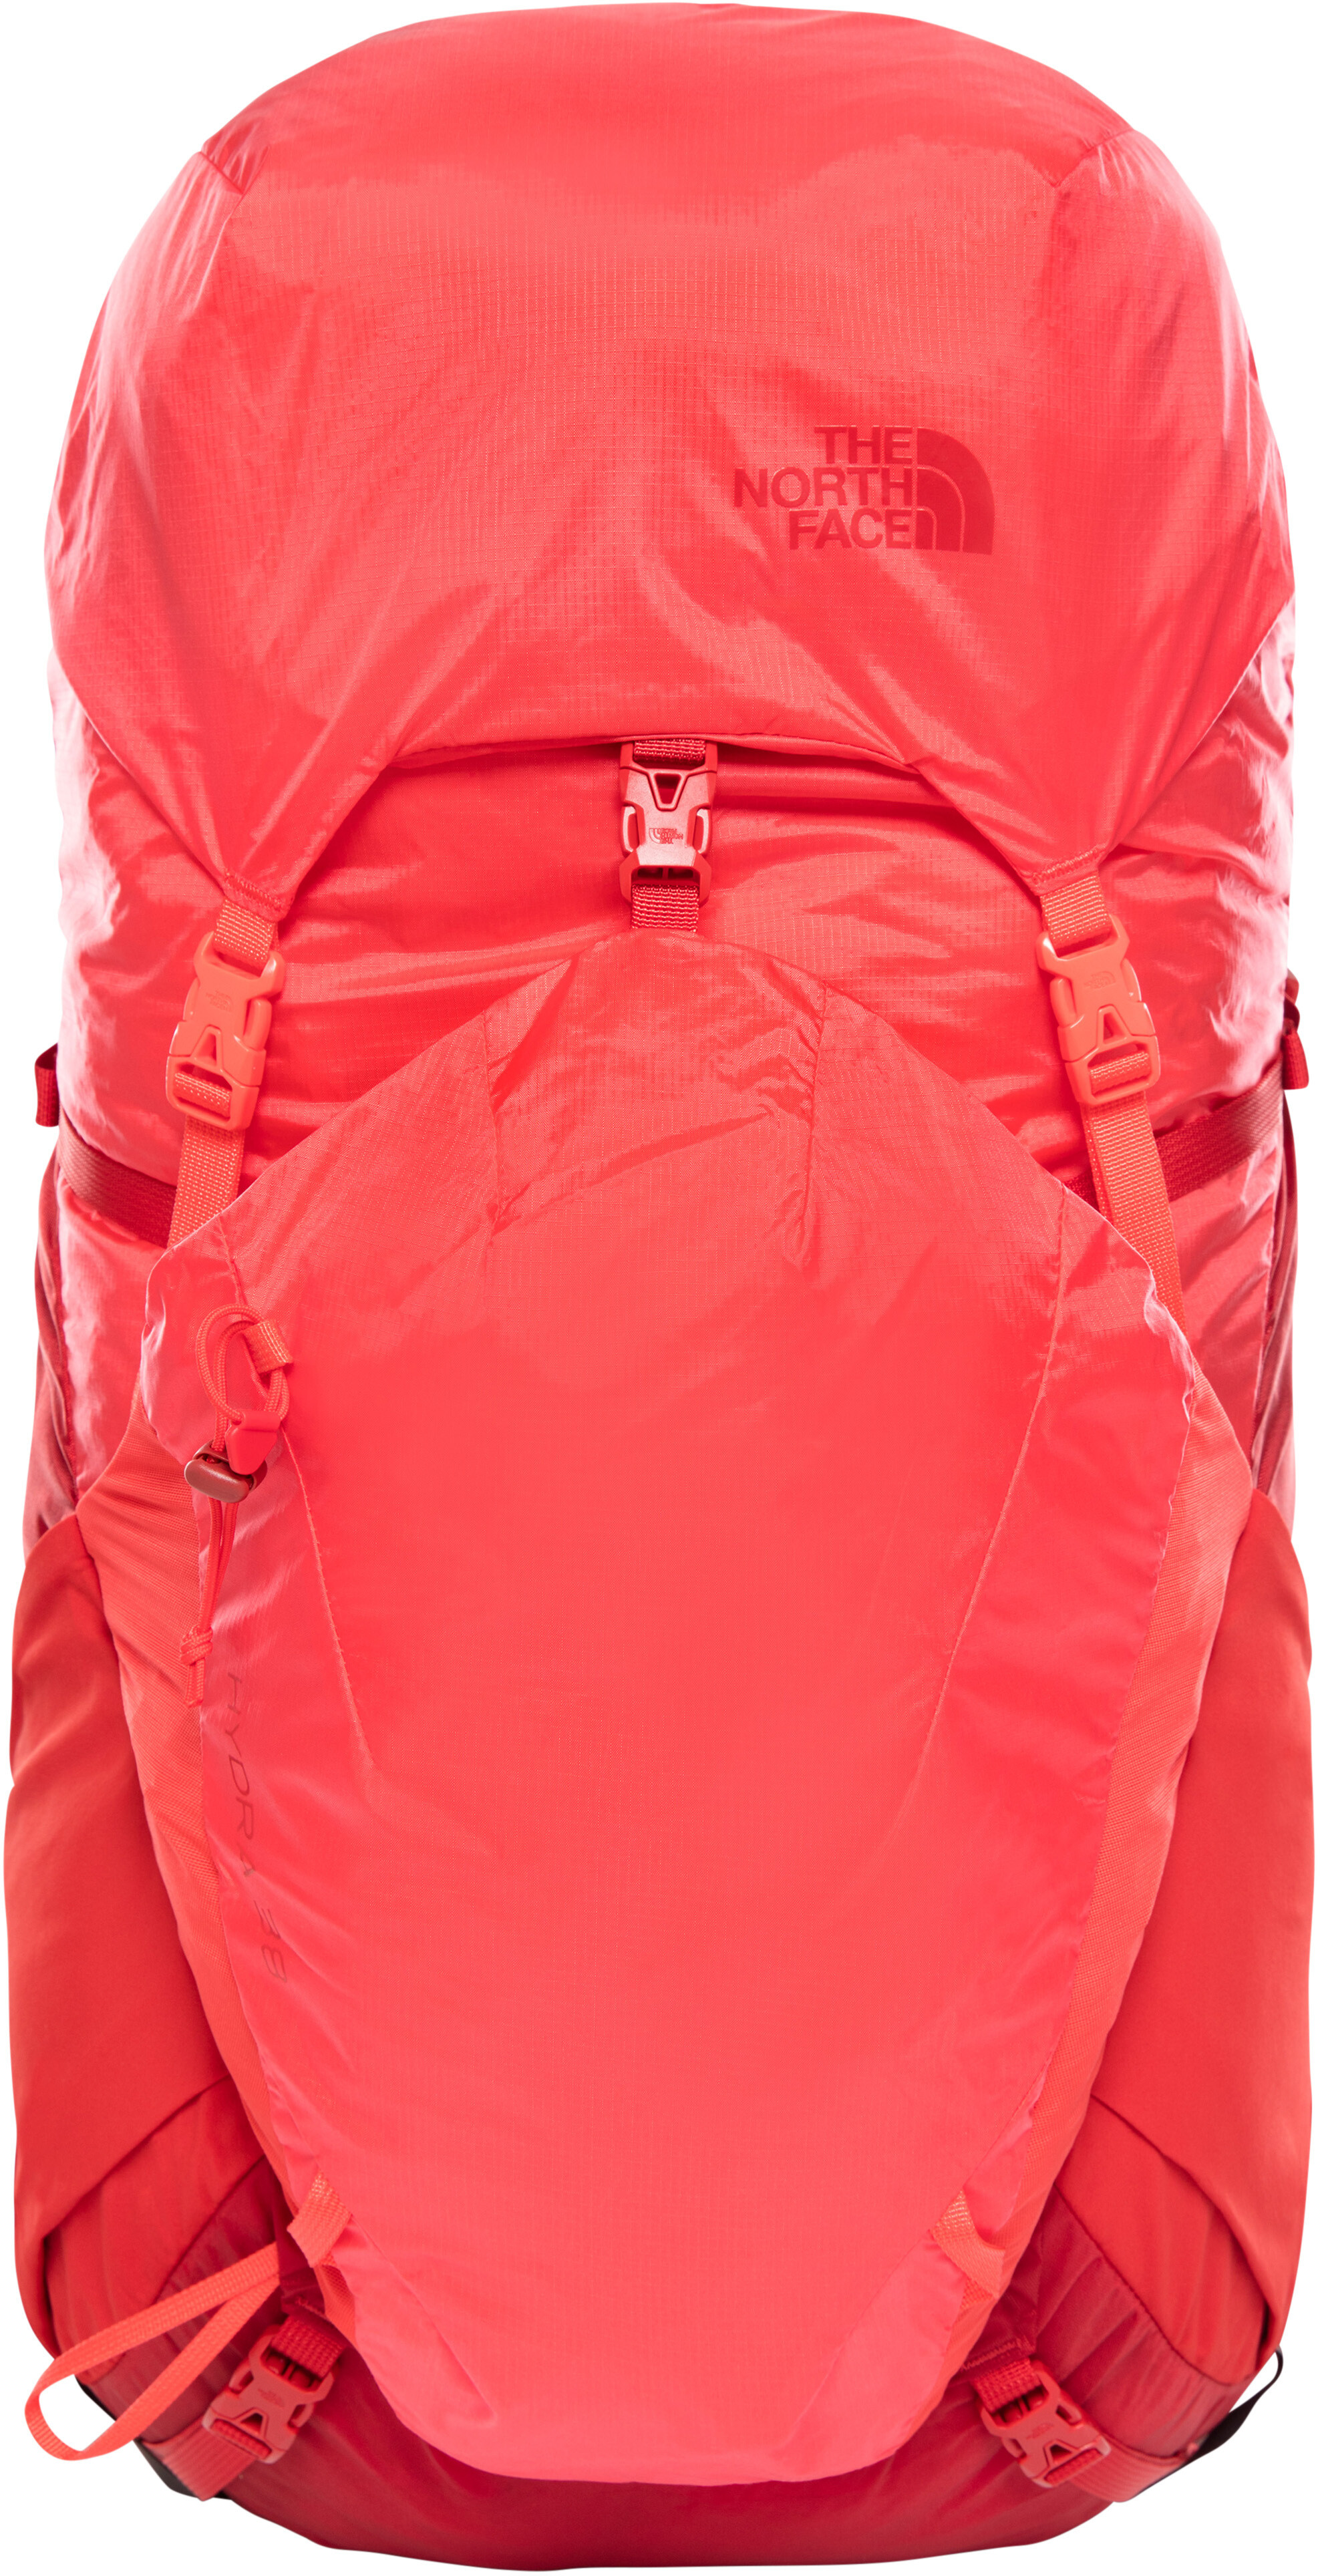 d29593e10c6 The North Face Hydra 38 RC Backpack Damen pompeian red/juicy red ...